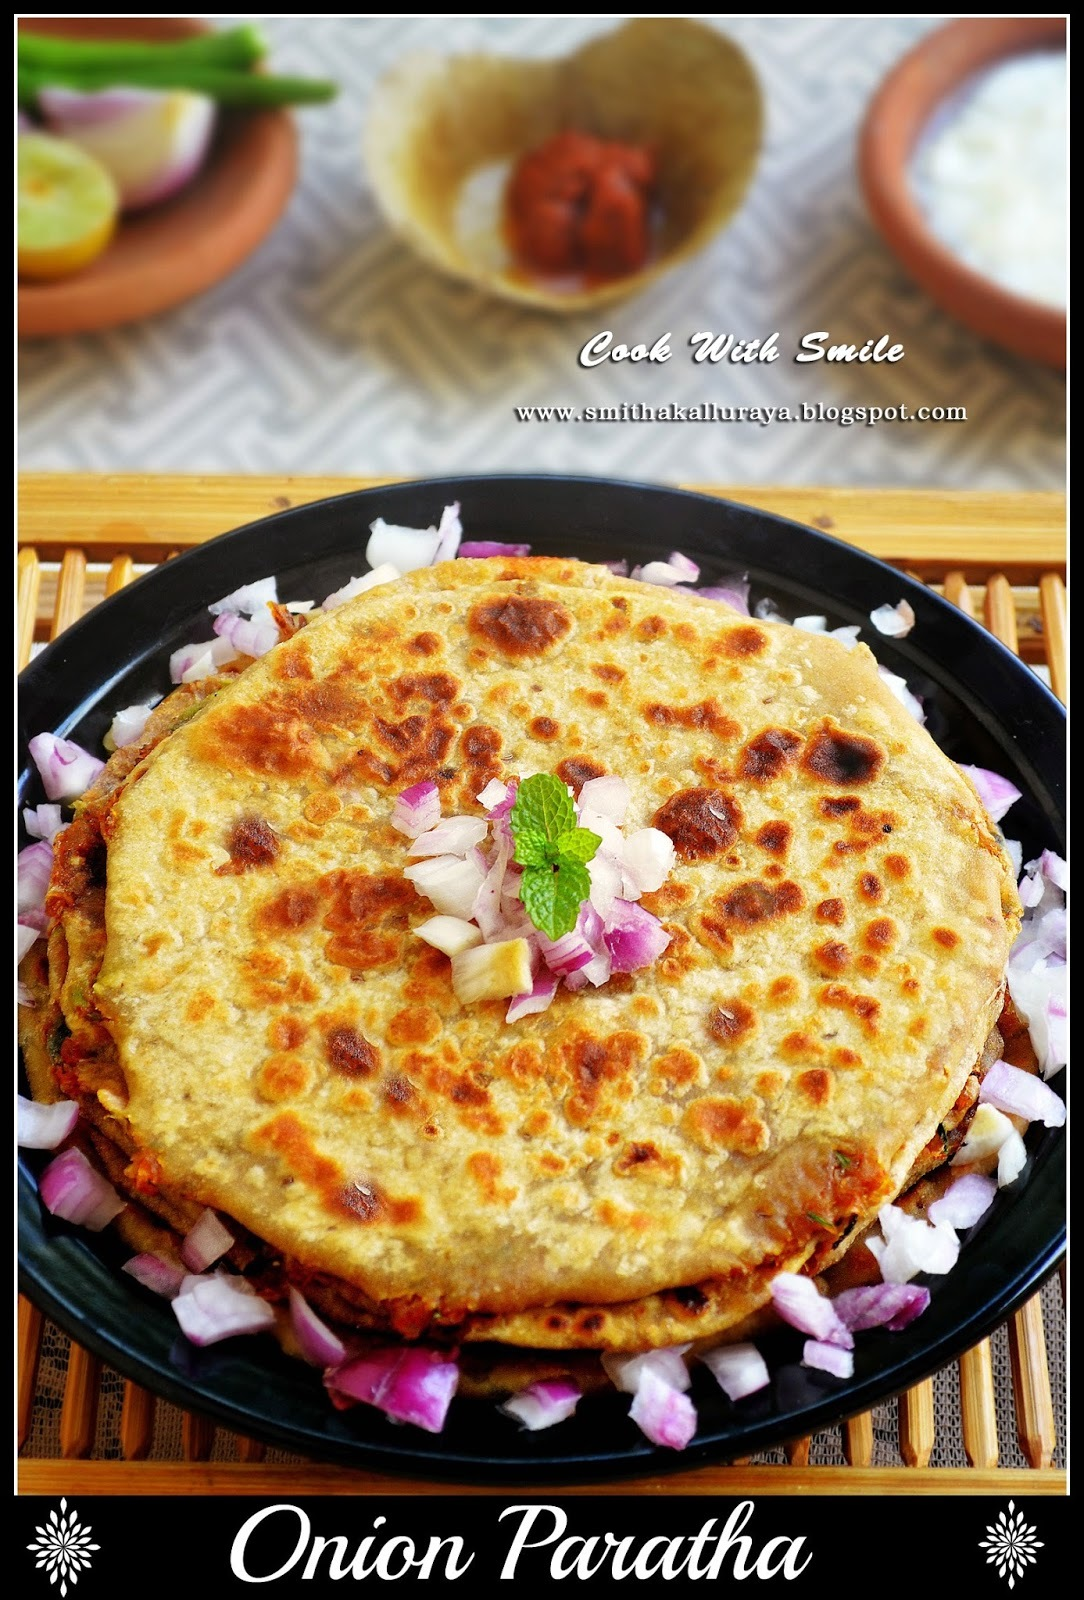 ONION PARATHA / PYAAZ KA PARATHA / STUFFED ONION FLATBREAD